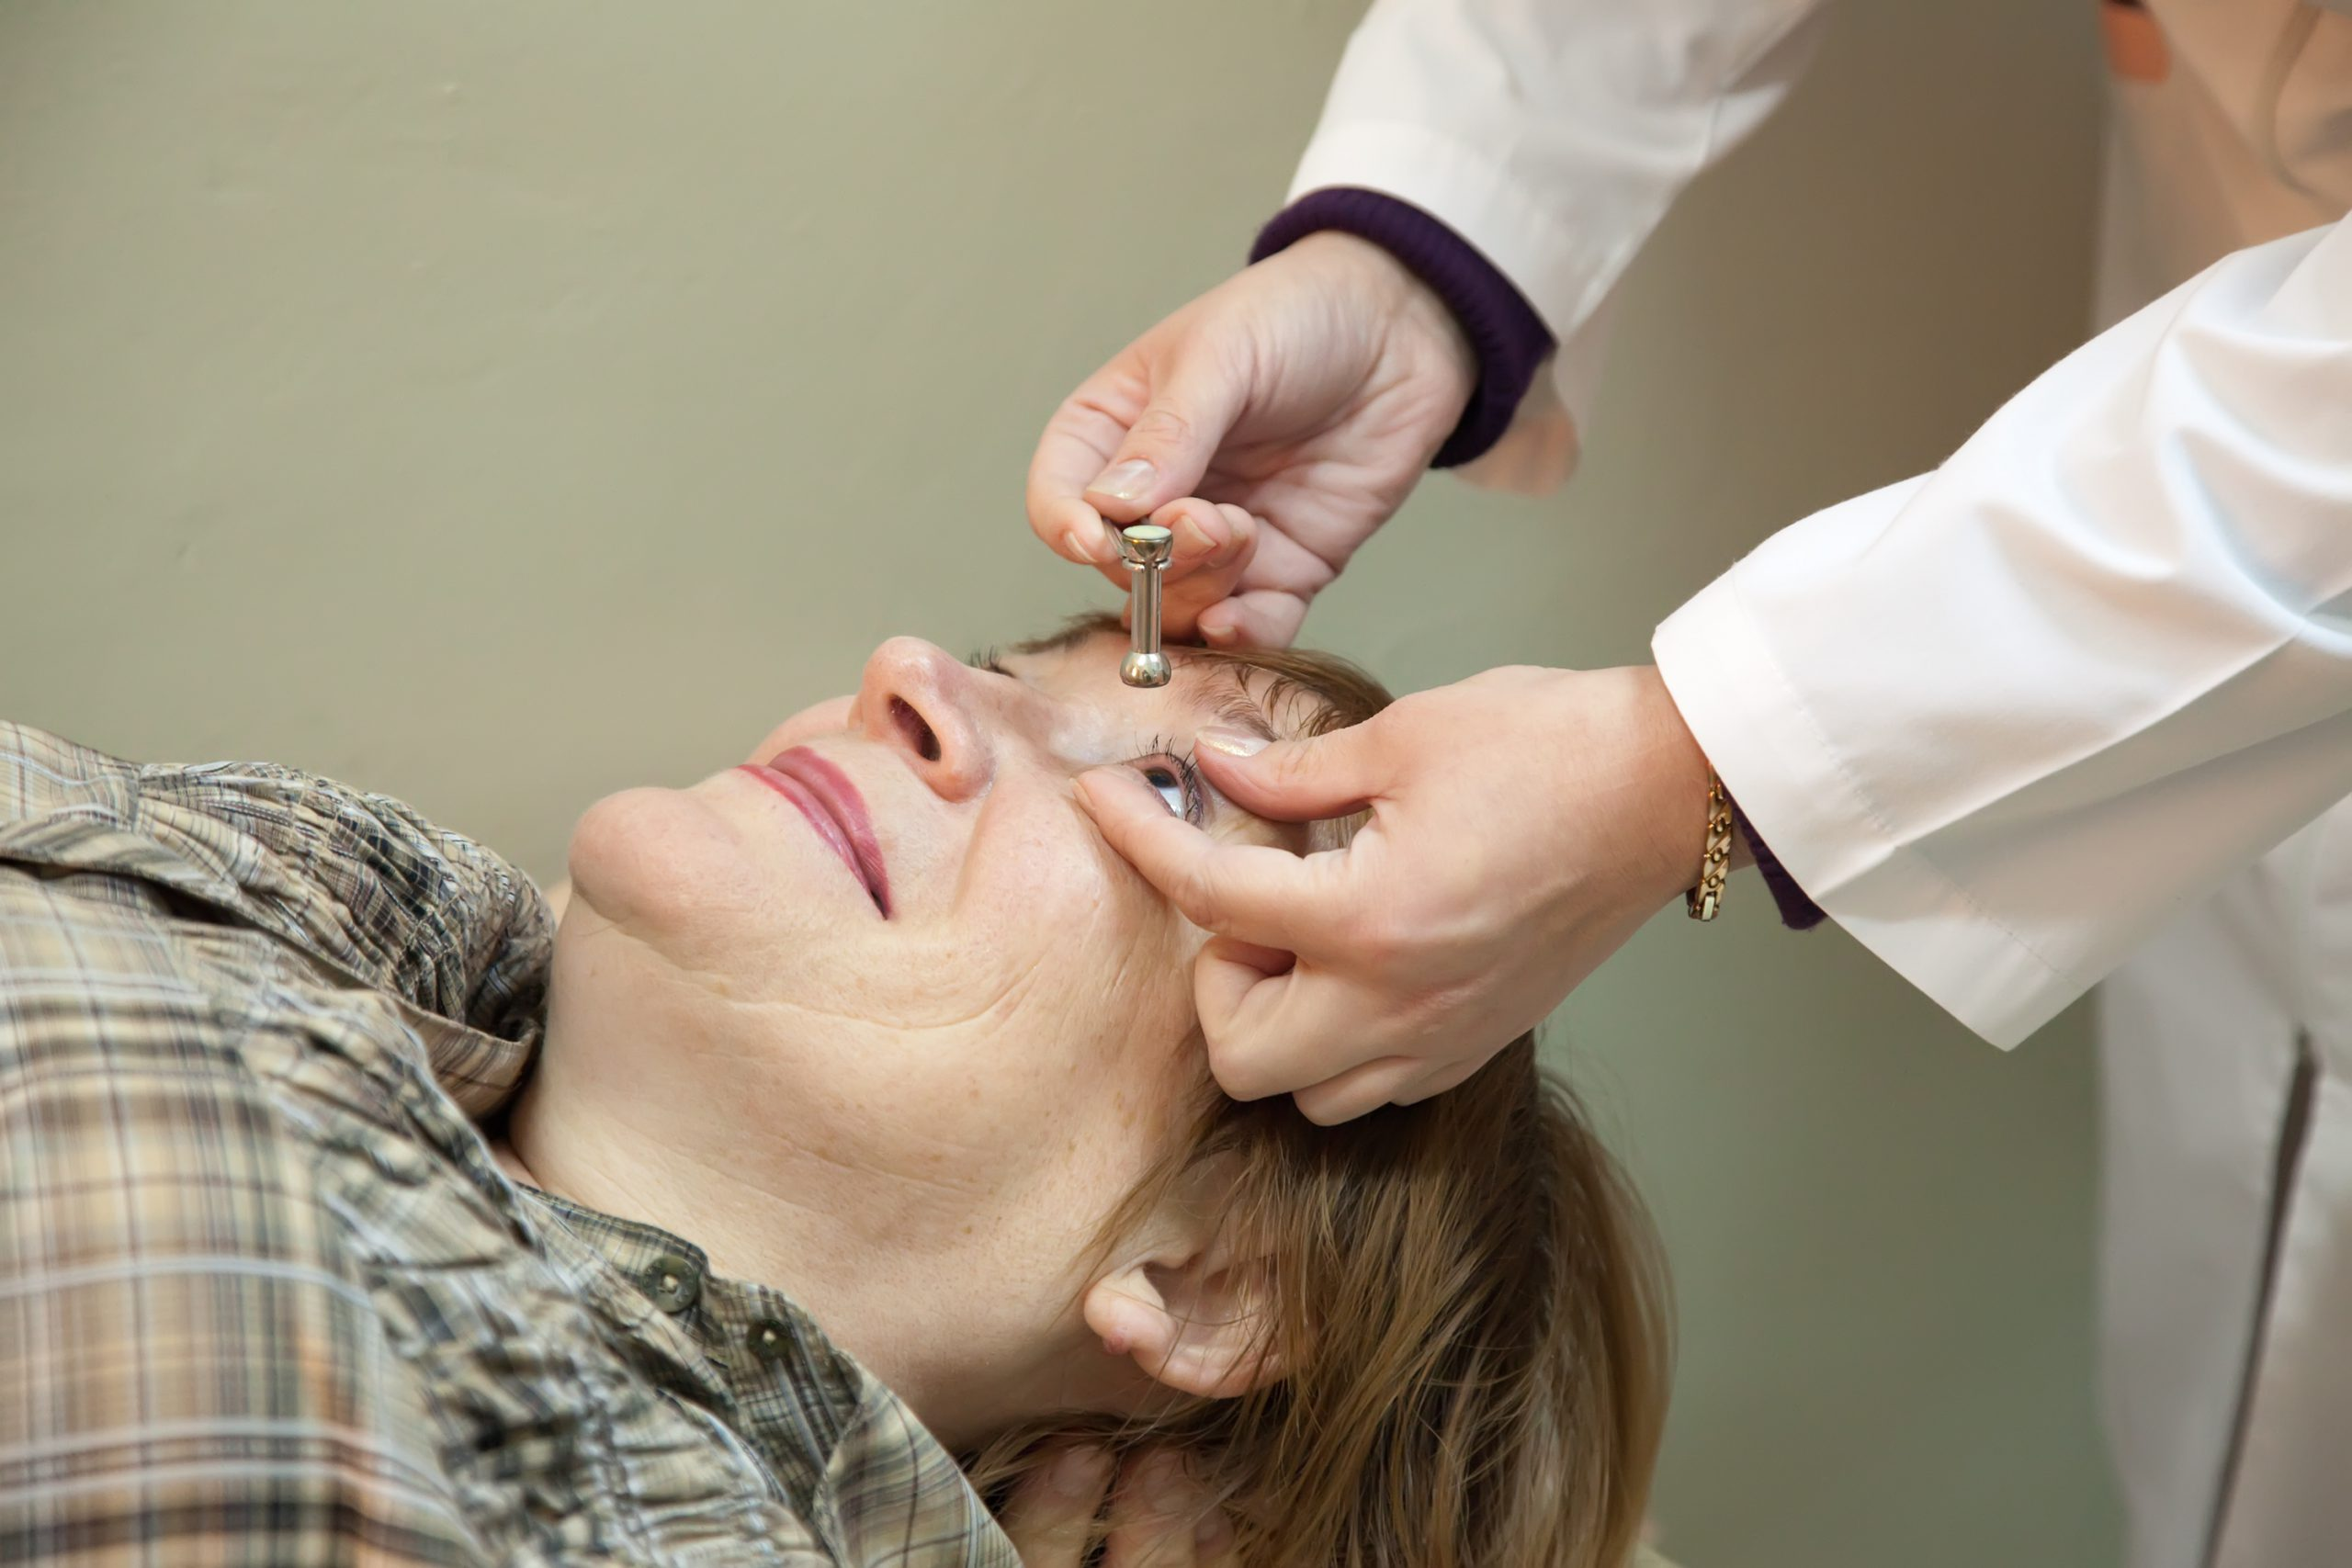 Ophthalmologist measures a patient's intraocular pressure (IOP) for glaucoma